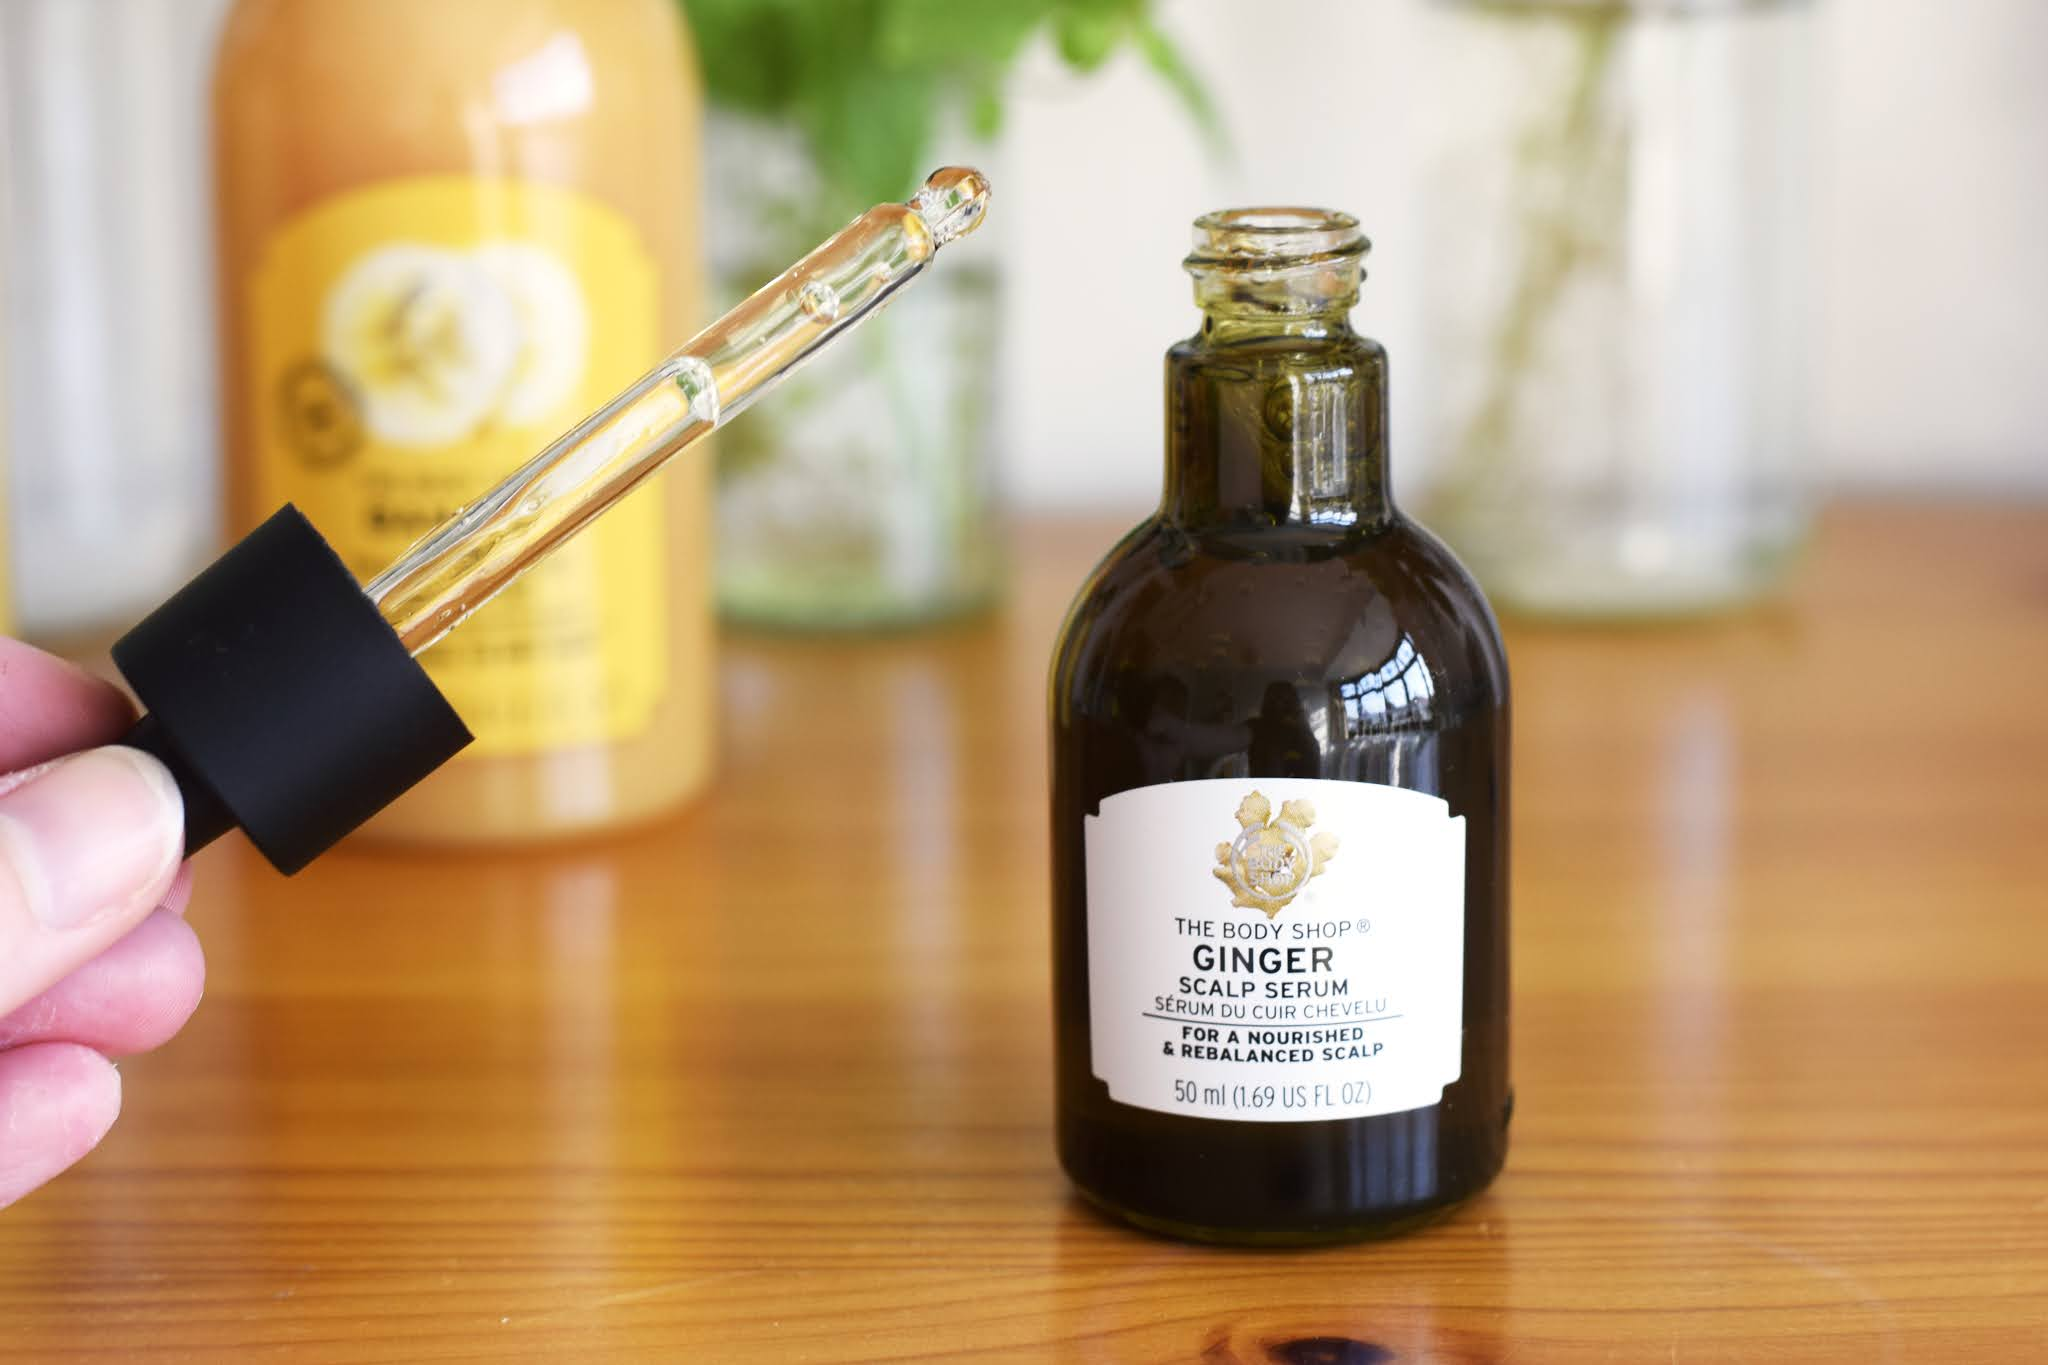 a small glass vial of body shop ginger scalp serum. The with pipet is off the vial and can be seen to the side.